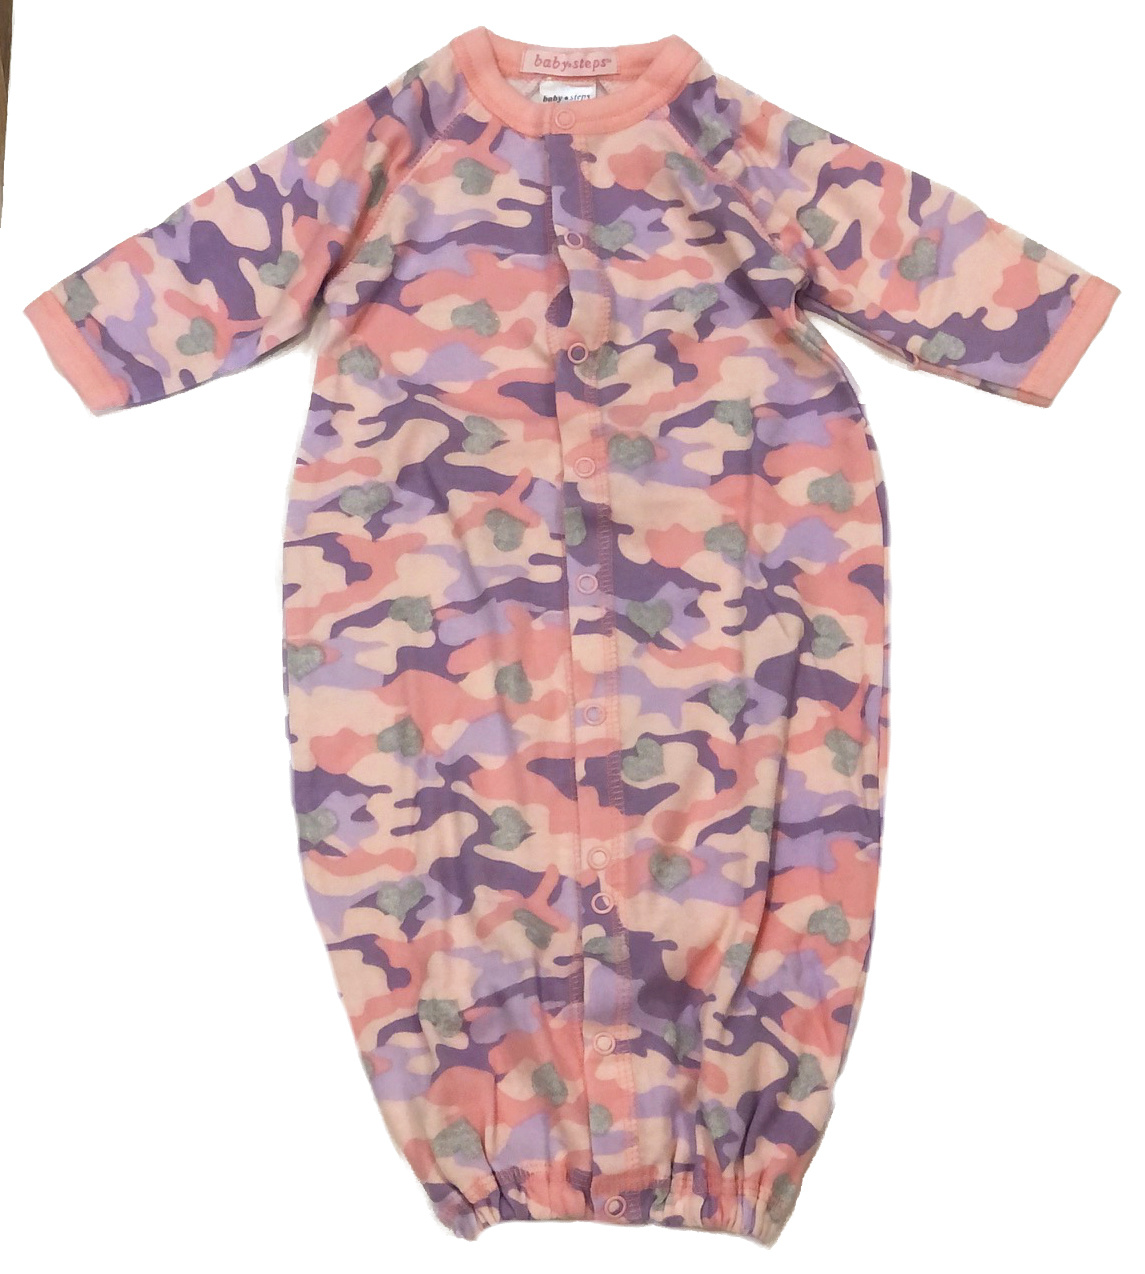 Baby Steps Pink/Purp Camo Heart Converter Gown